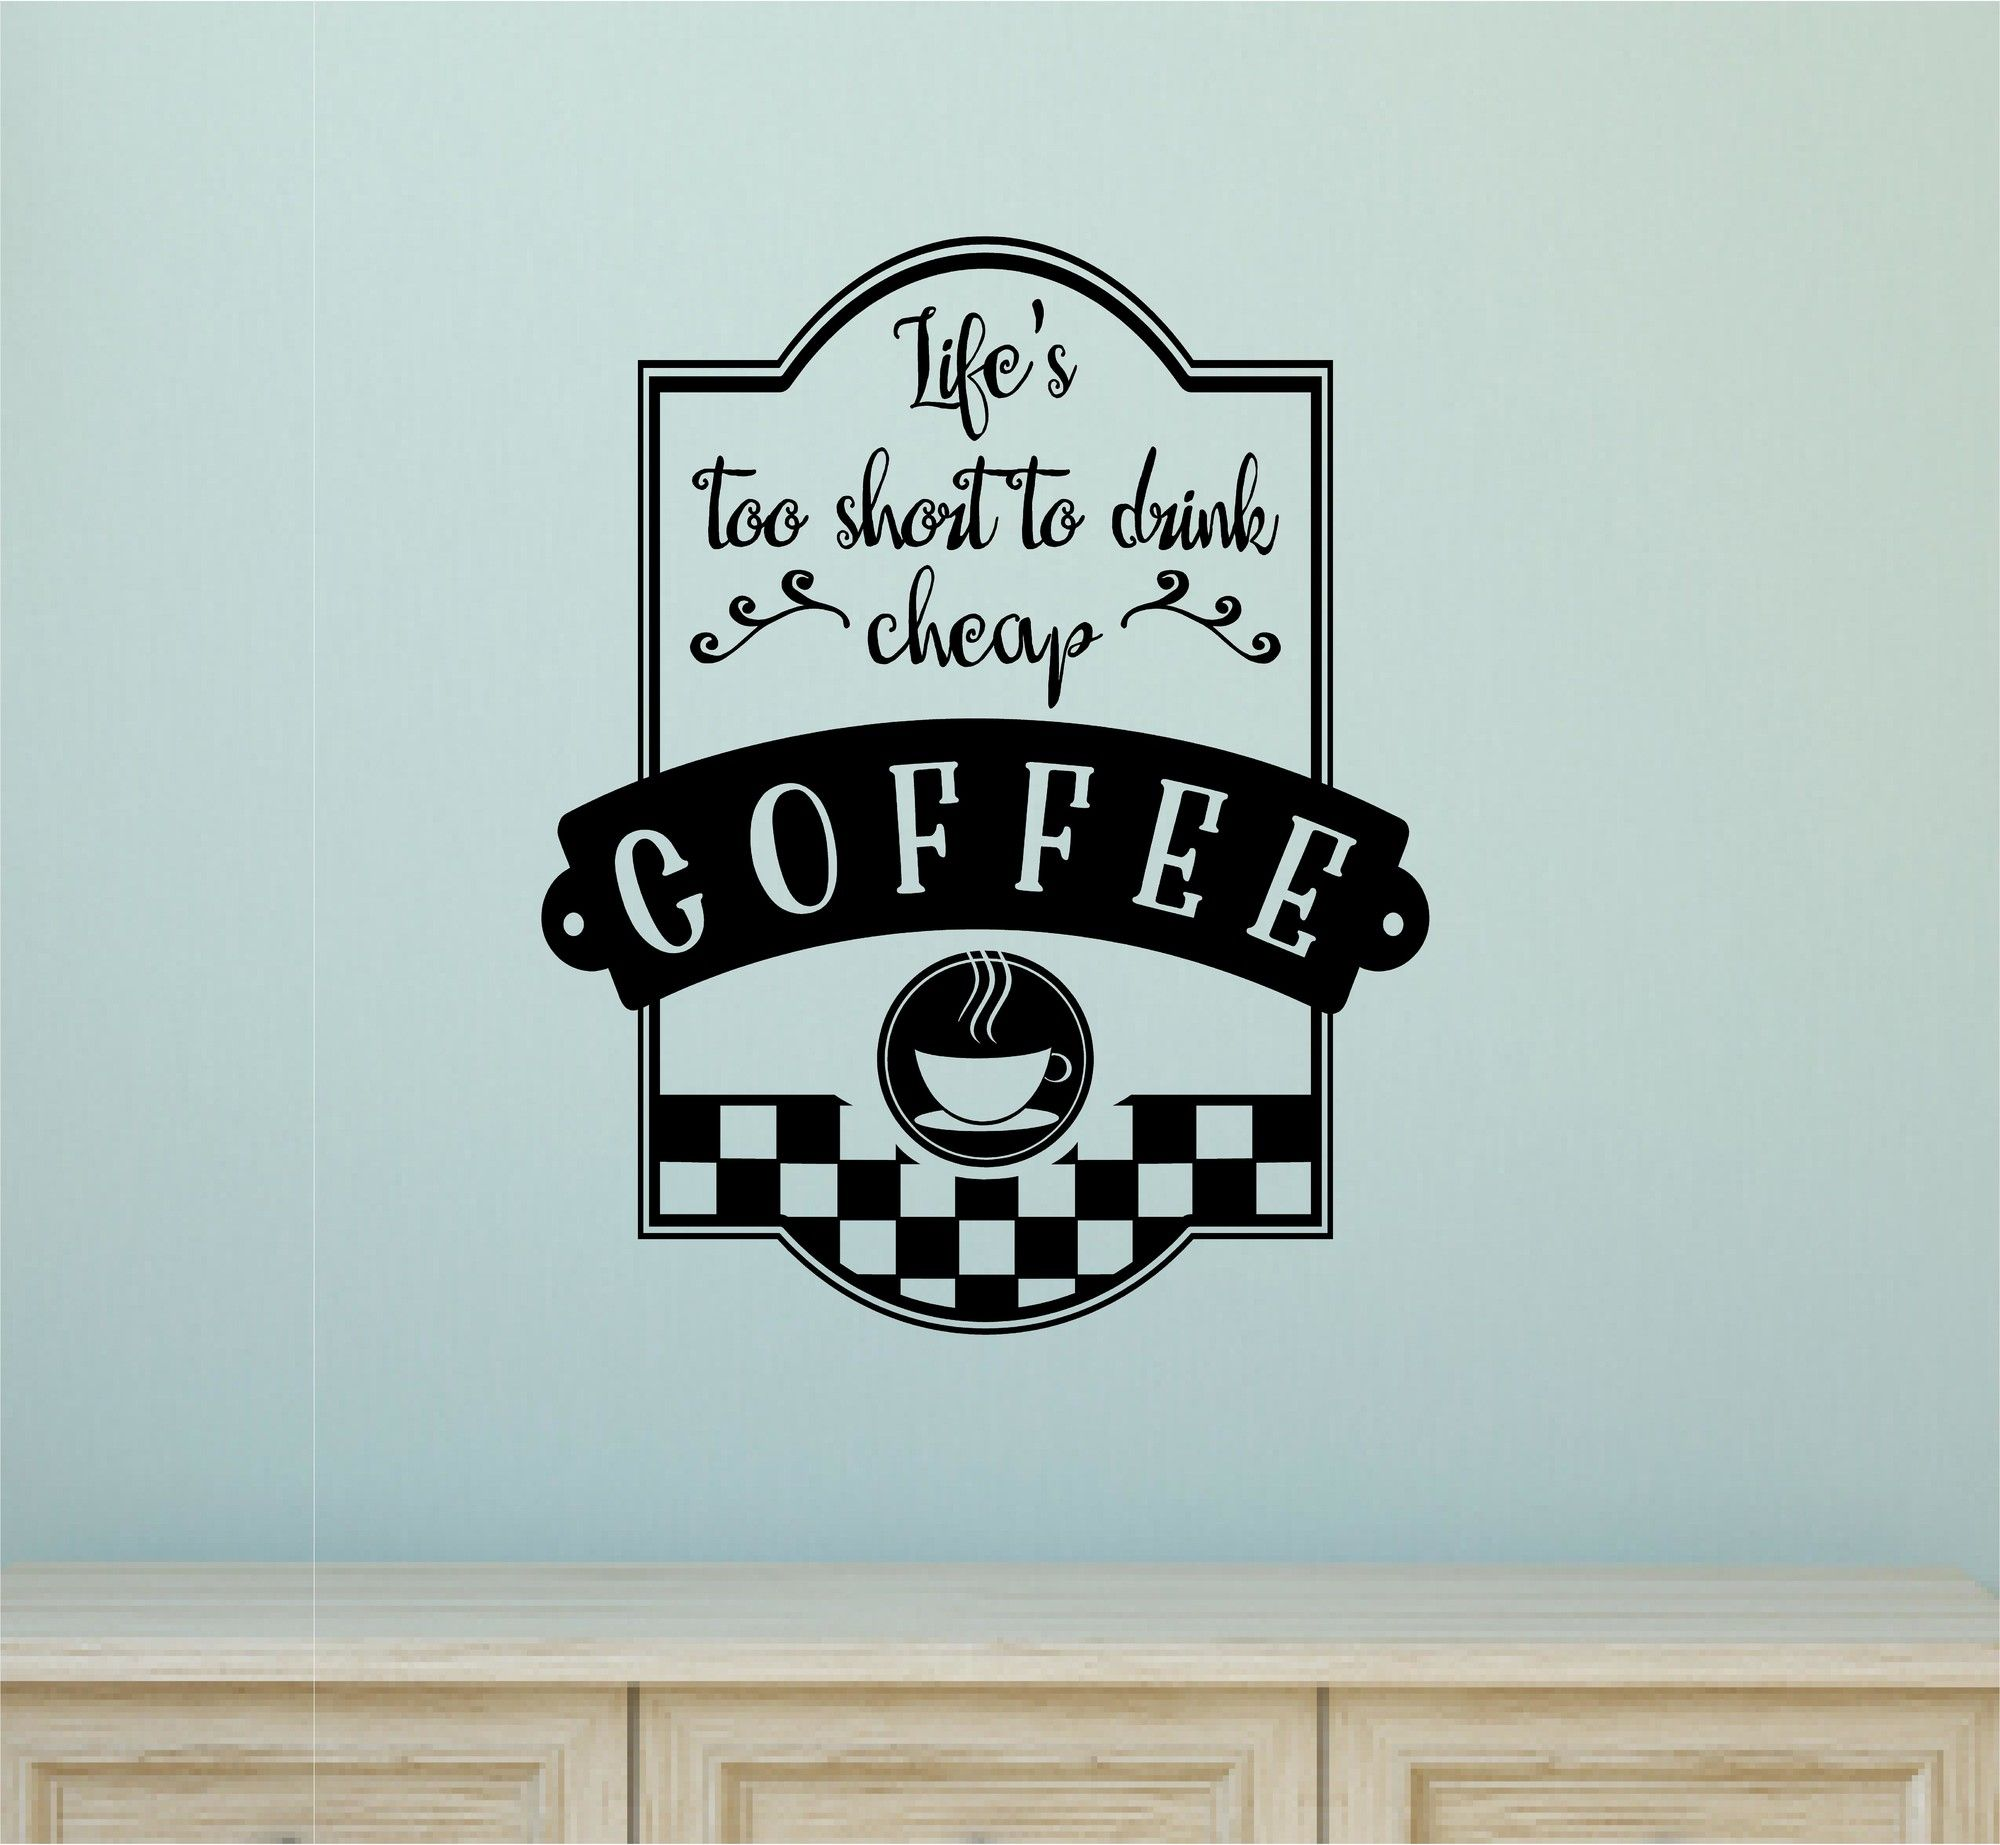 Lifeu0027s Too Short To Drink Cheap Coffee Wall Decal